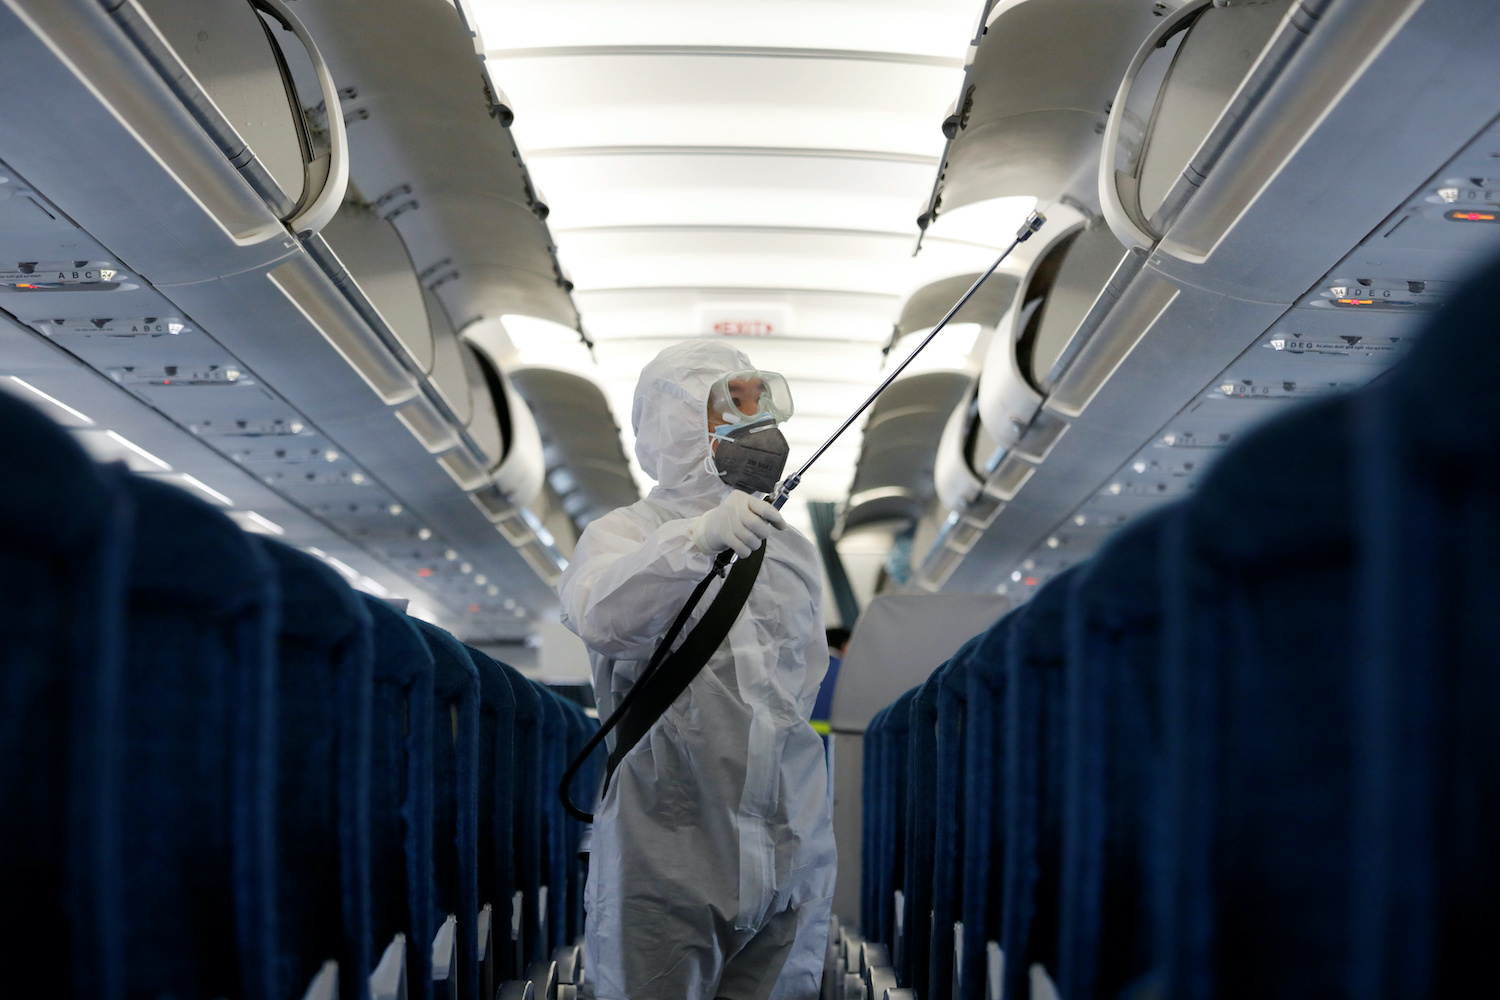 A health worker sprays disinfectant inside a Vietnam Airlines plane at Noi Bai airport in Hanoi. (Reuters Photo)